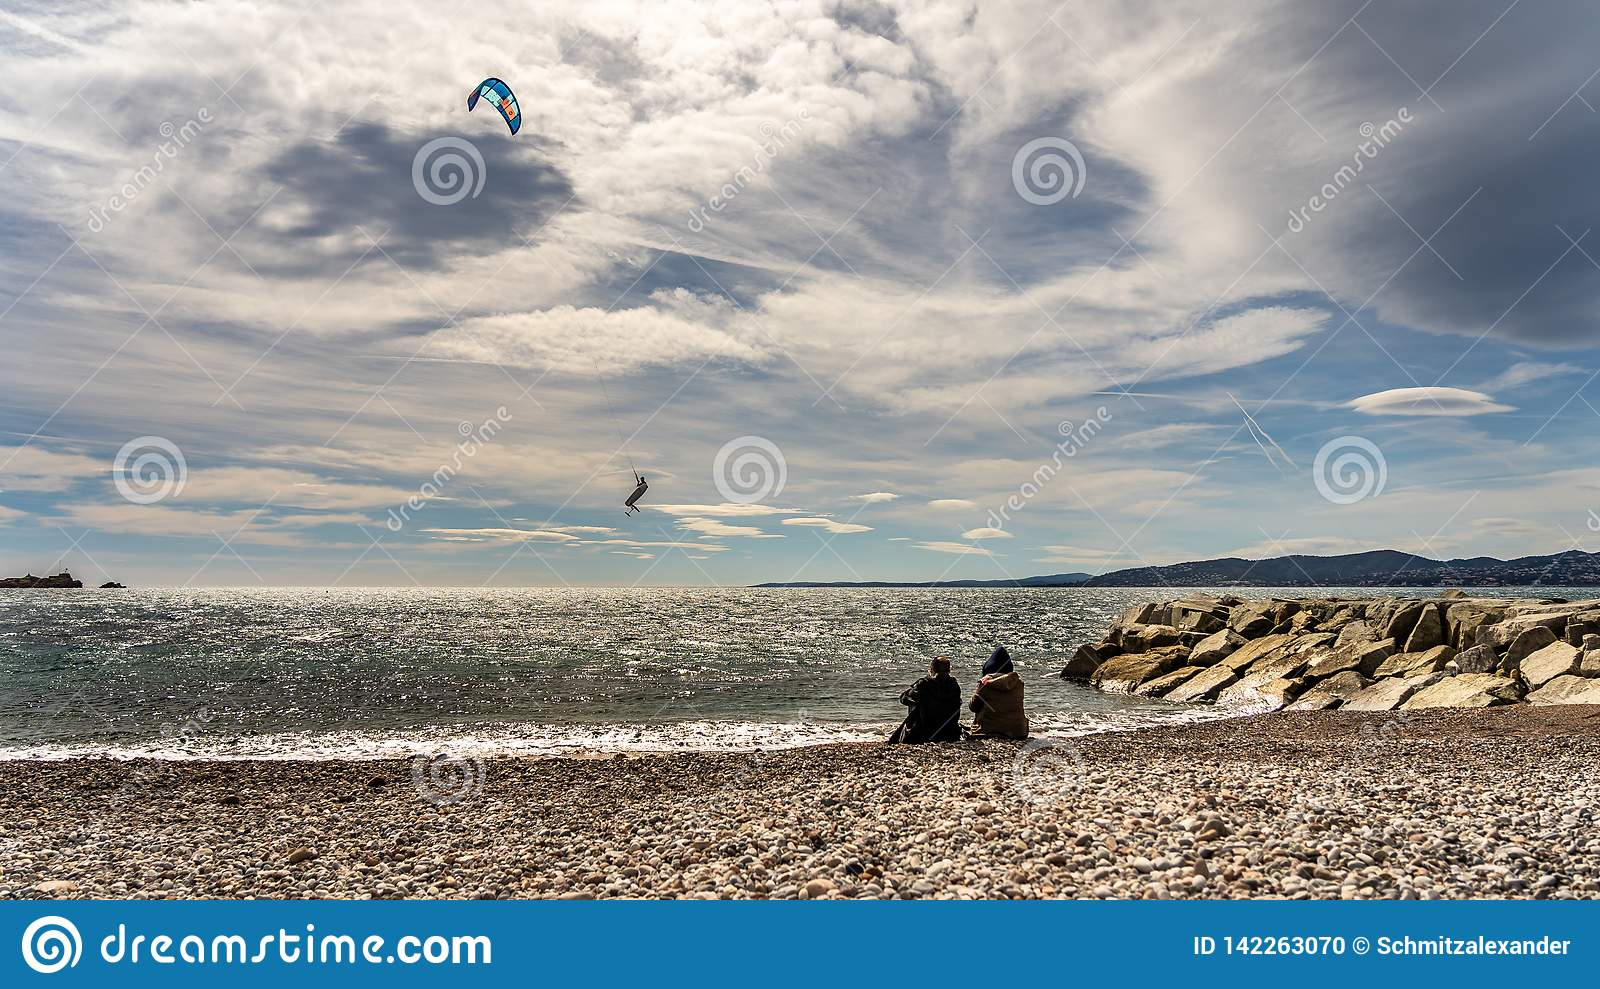 Kite surfer on french riviera in saint raphael, france